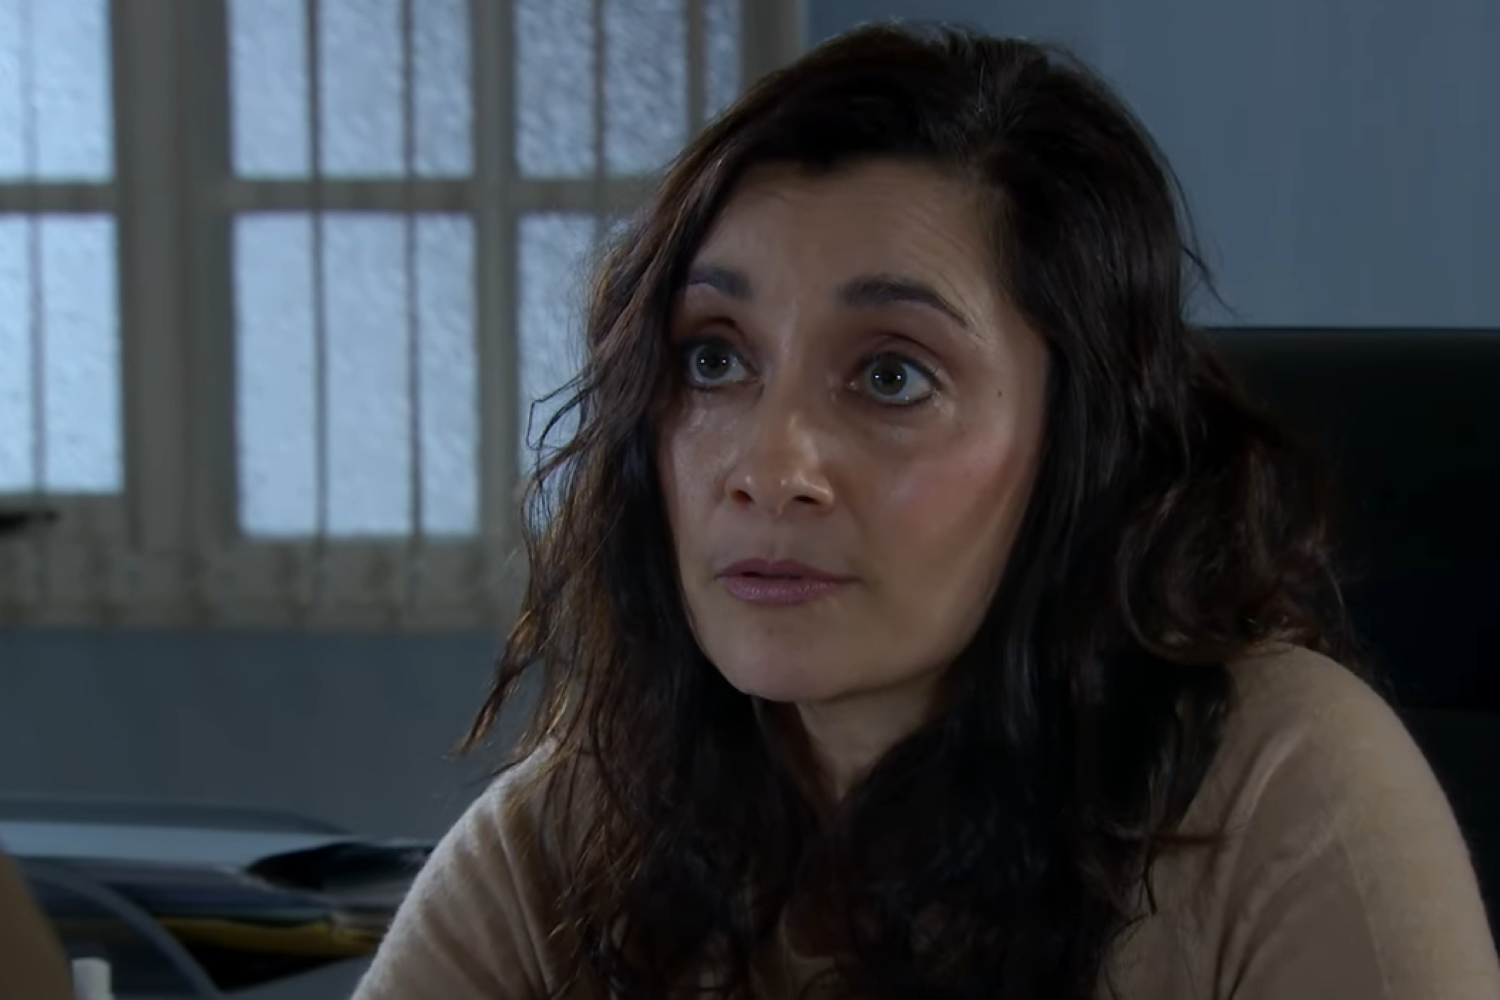 Emmerdale viewers unhappy with GP Manpreet for 'dismissing' Paddy's mental health battle